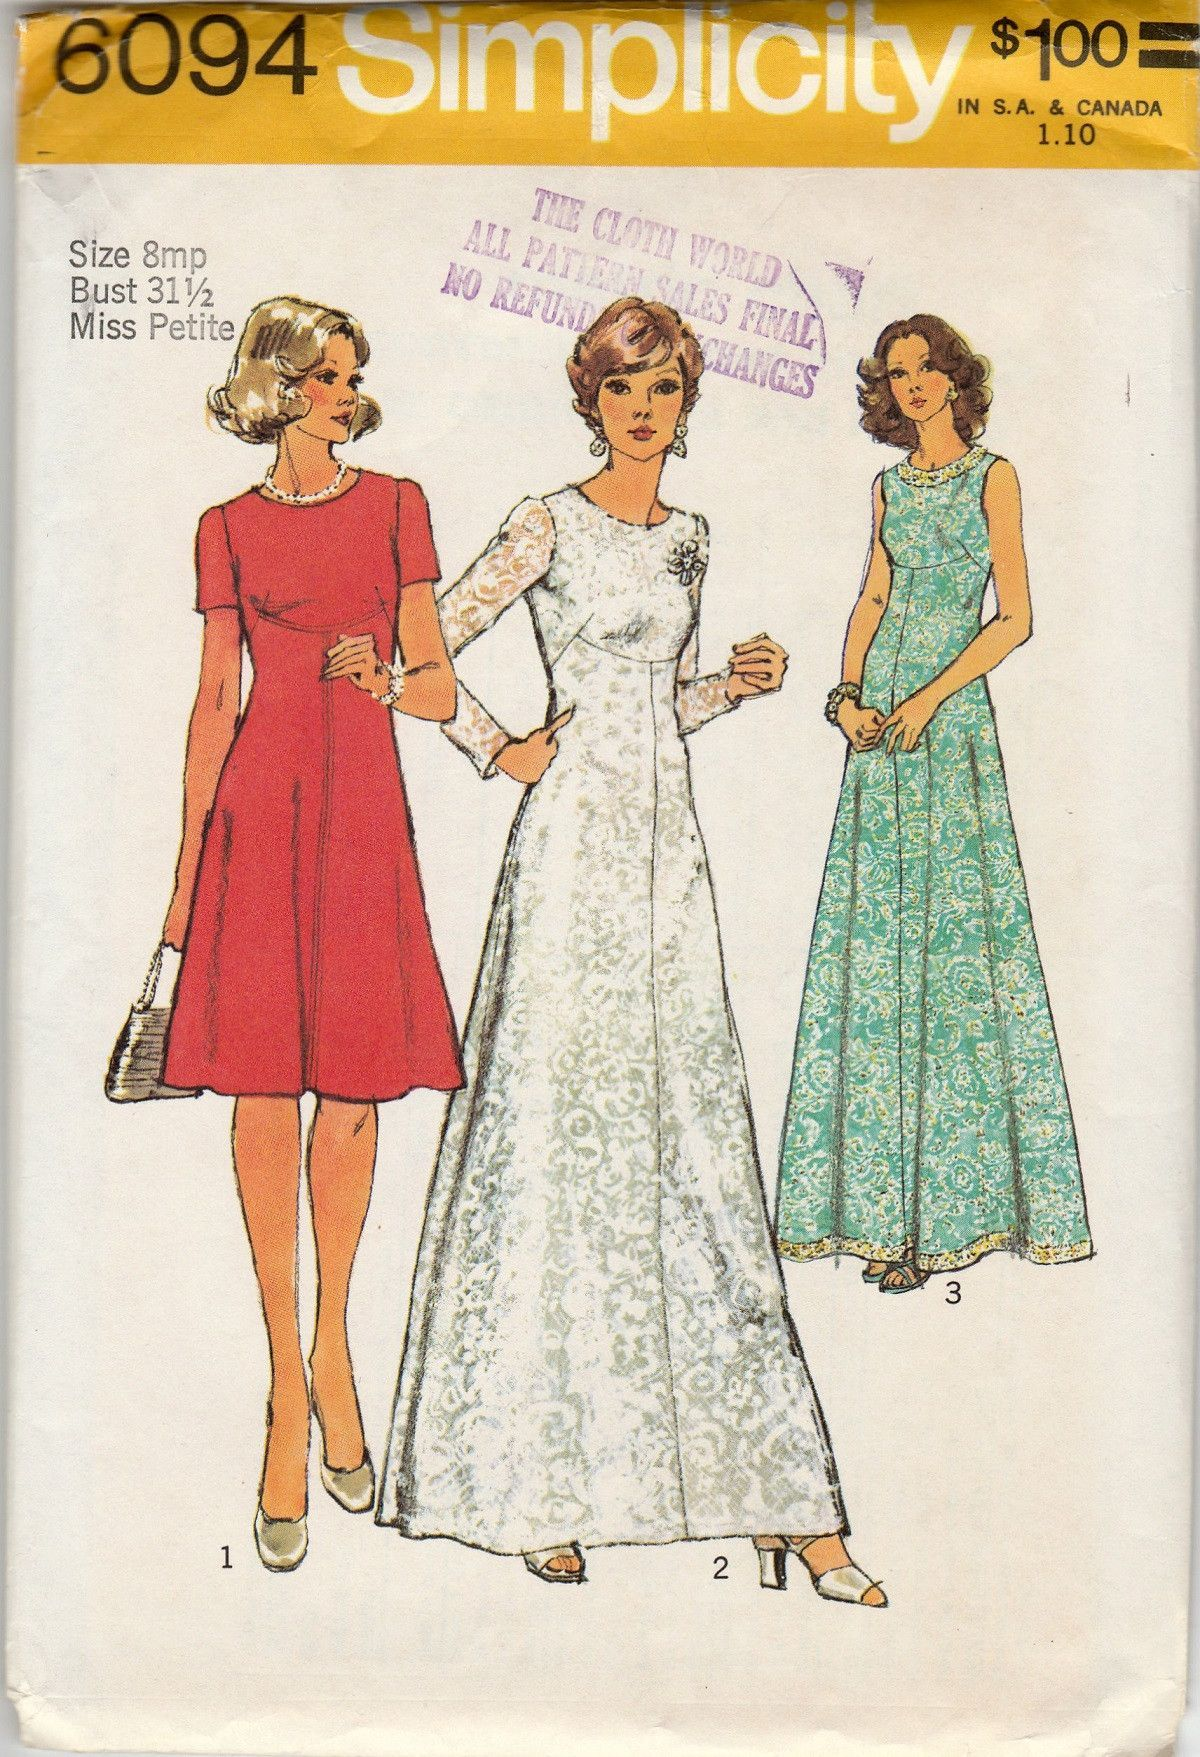 S simplicity petite dresses sewing pattern miss mp evening